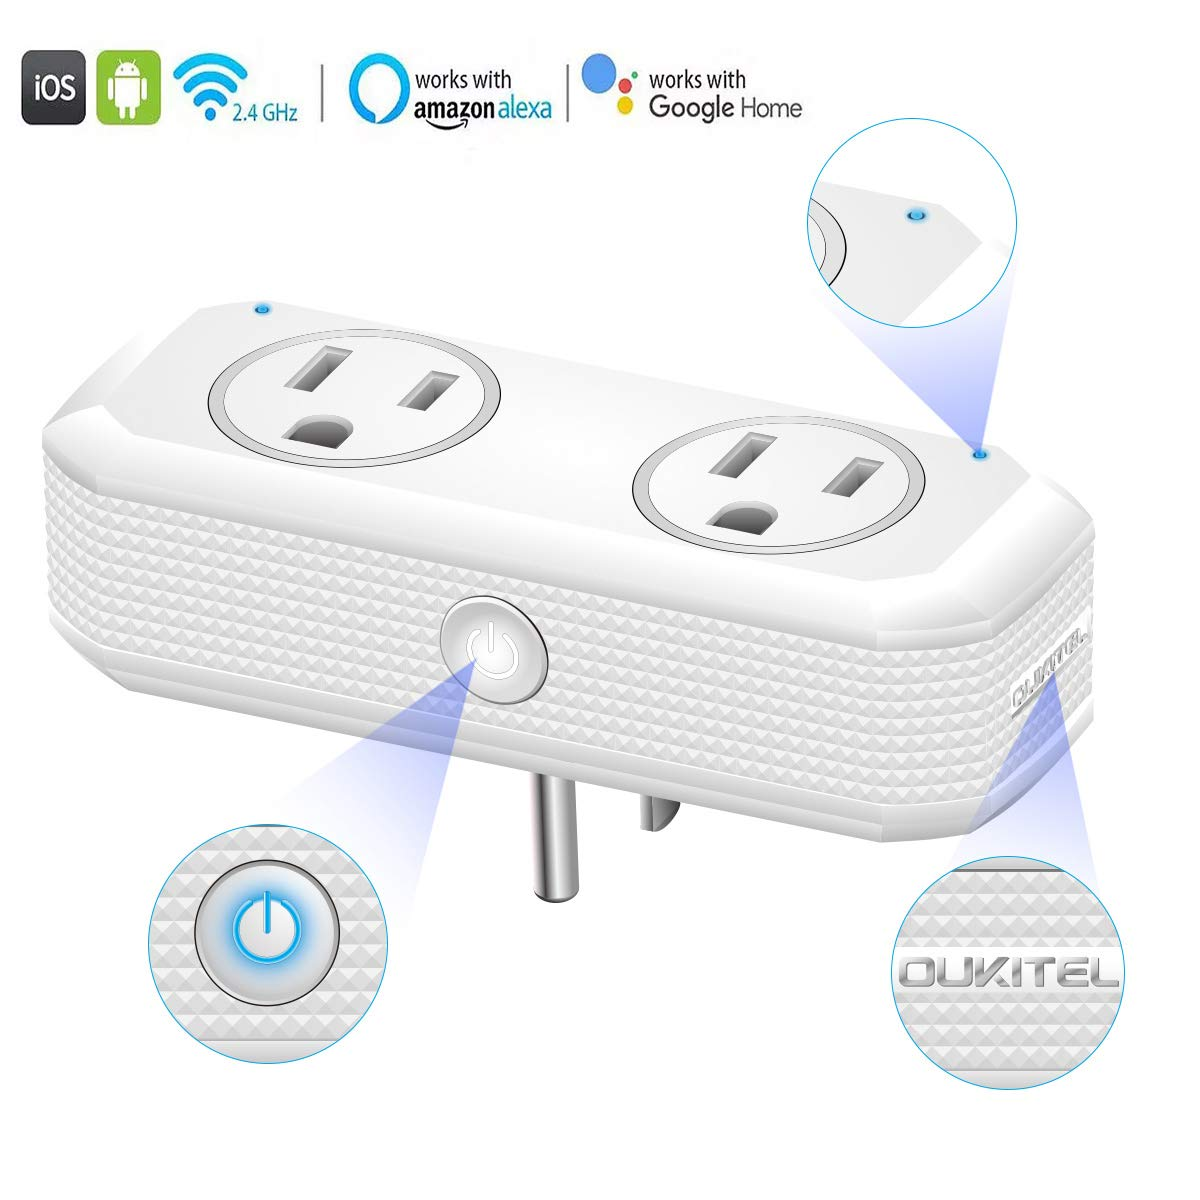 Oukitel Smart Wi-Fi Plug, Alexa Echo Plug,2 in 1 Smart Plug Mini Outlet With Timer Wi-Fi Smart Socket Switch Voice and App Controlled,Compatible with Alexa Echo,Google Home and IFTTT (1 Pack, Gray)